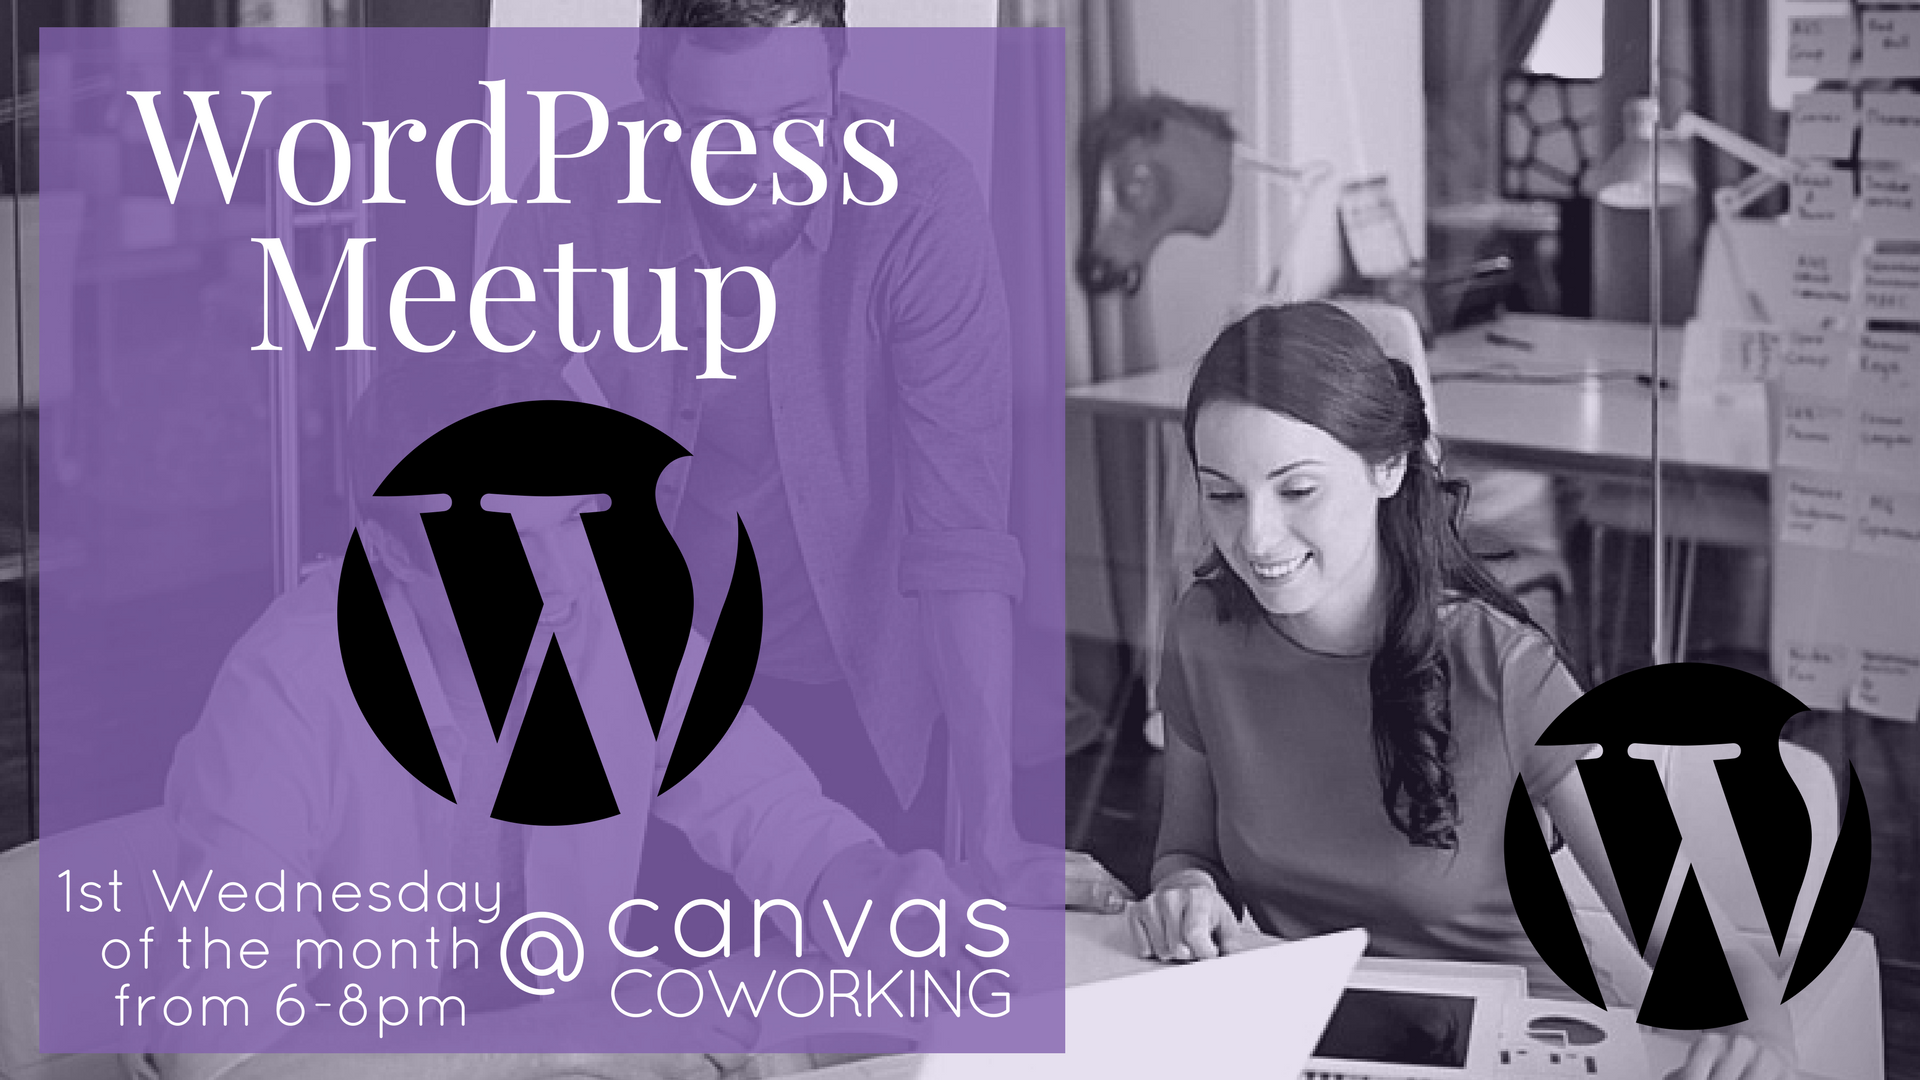 WordPress Meetup - Toowoomba - First Wednesday of the Month